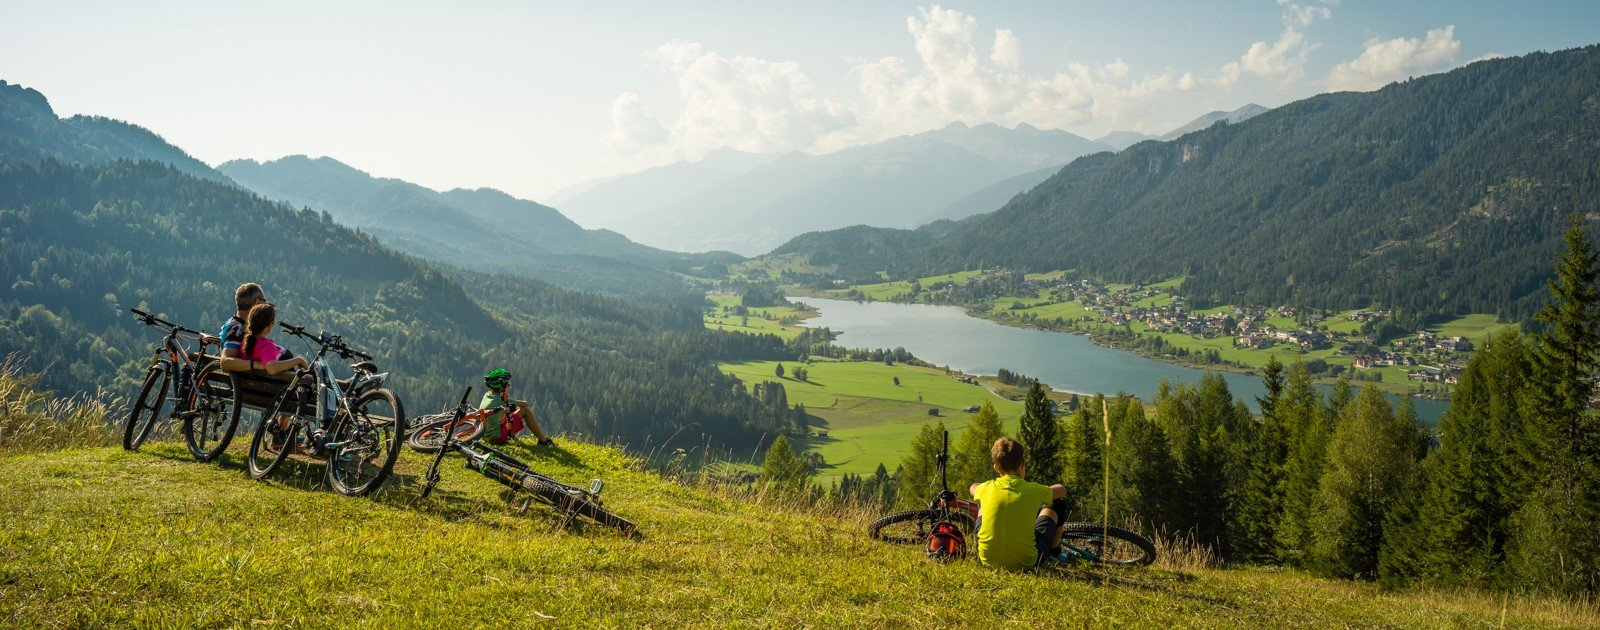 Familien Mountainbike Tour am Weissensee